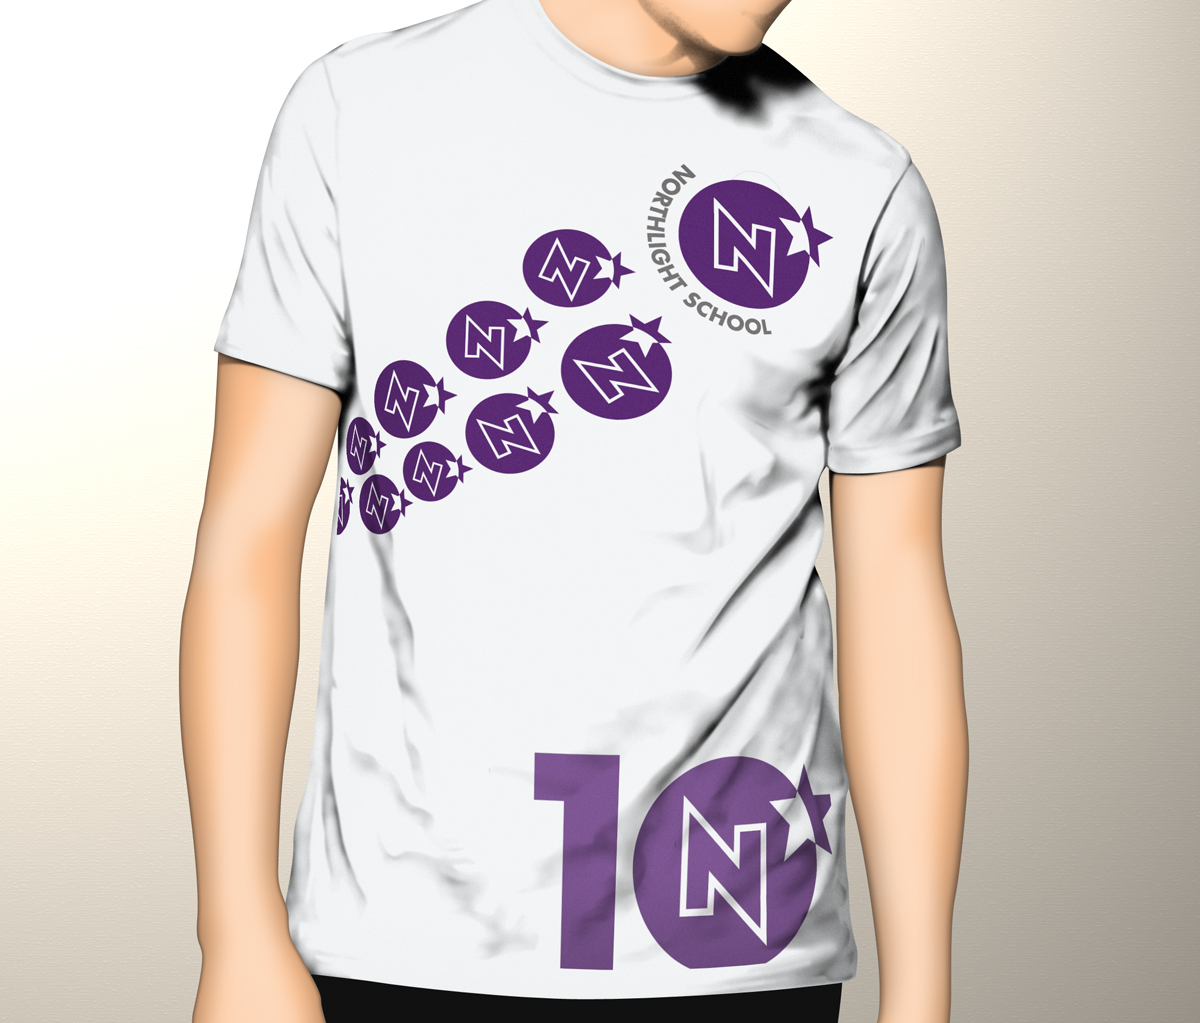 Modern colorful education t shirt design for northlight for T shirt design for education